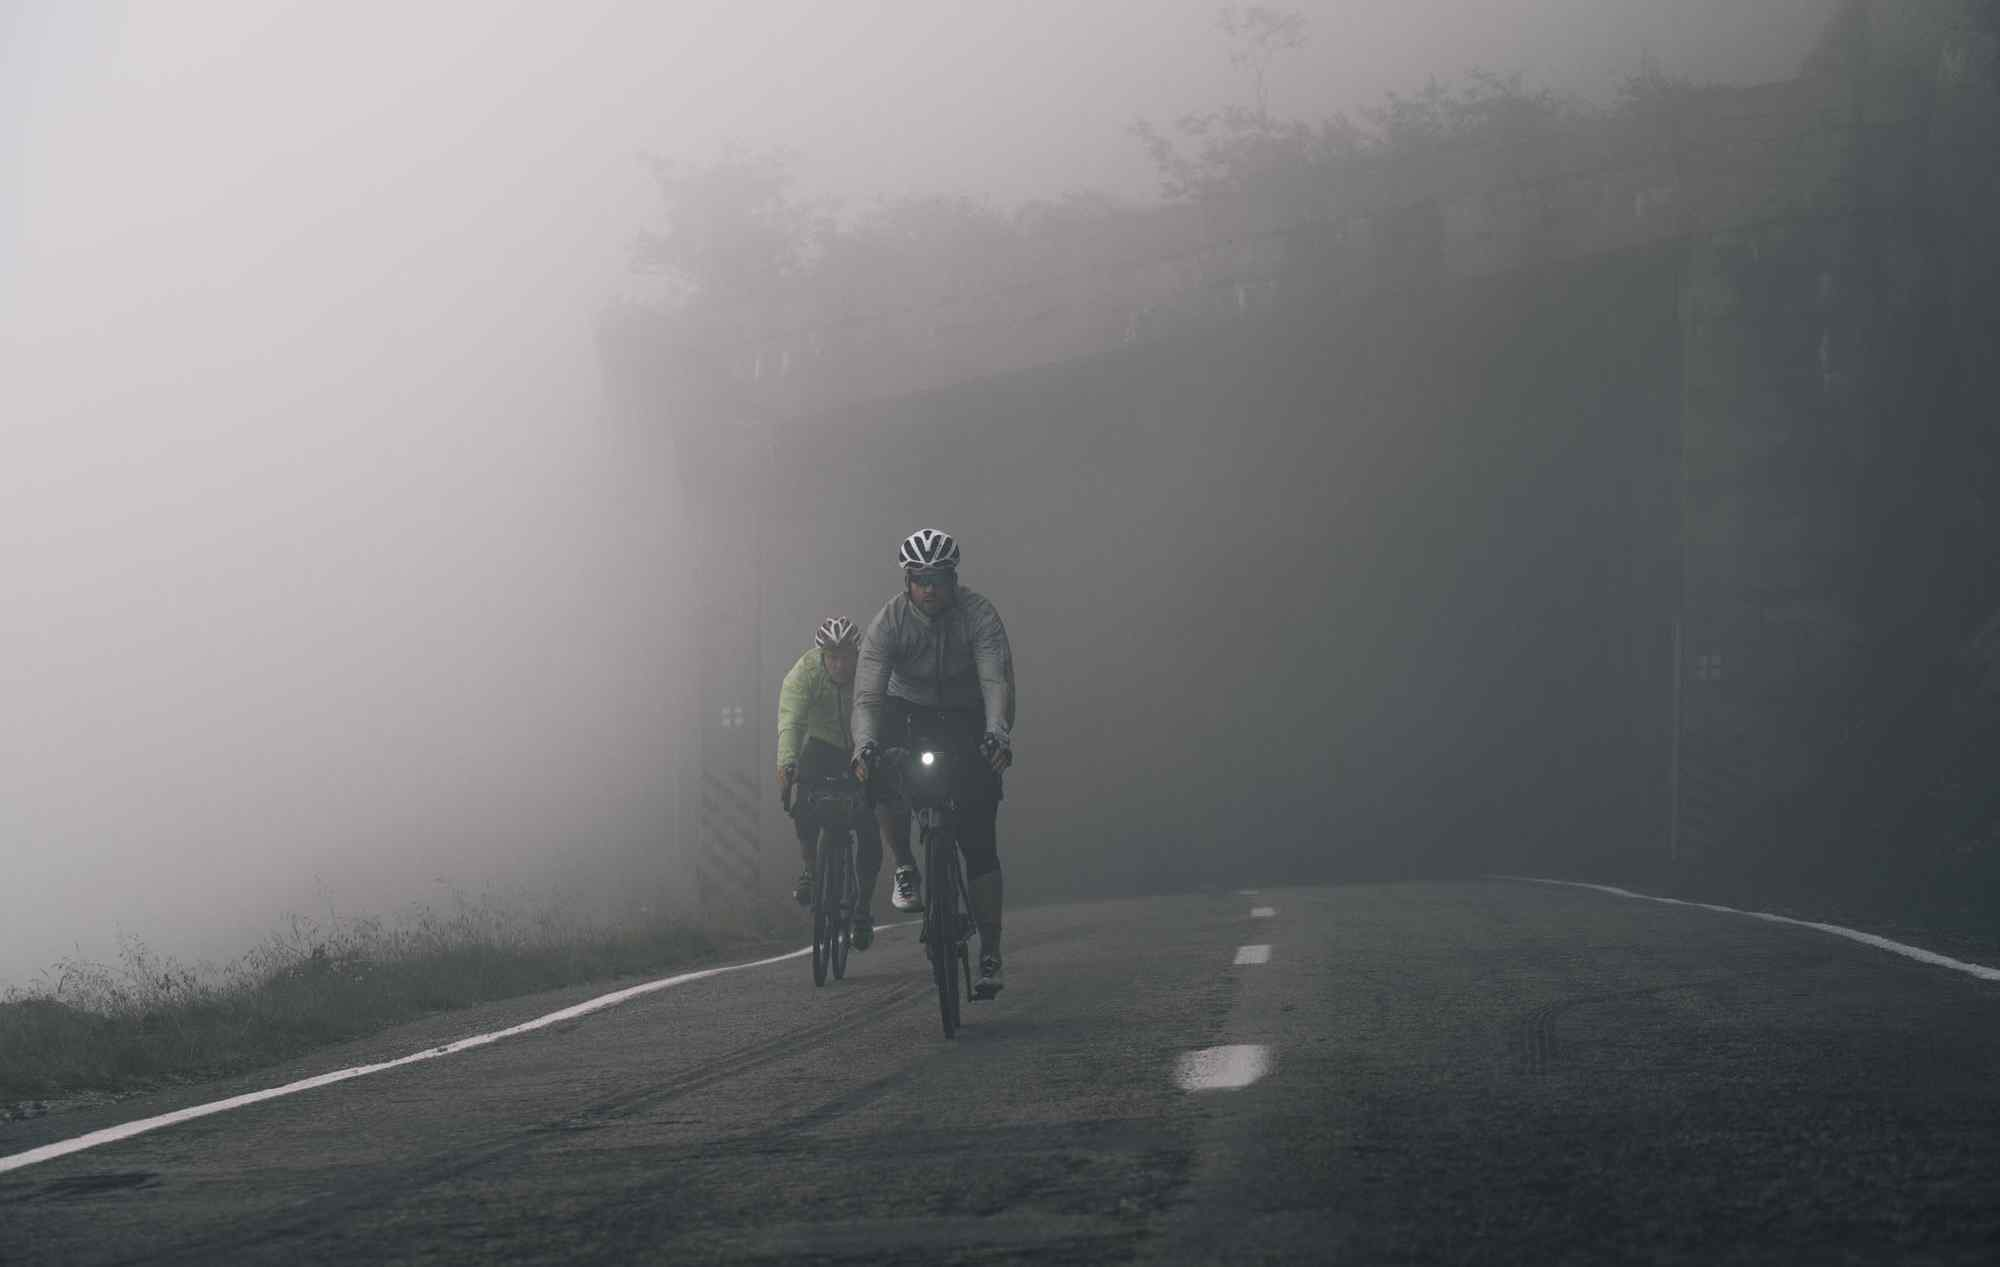 Two me riding their bikes in a foggy road